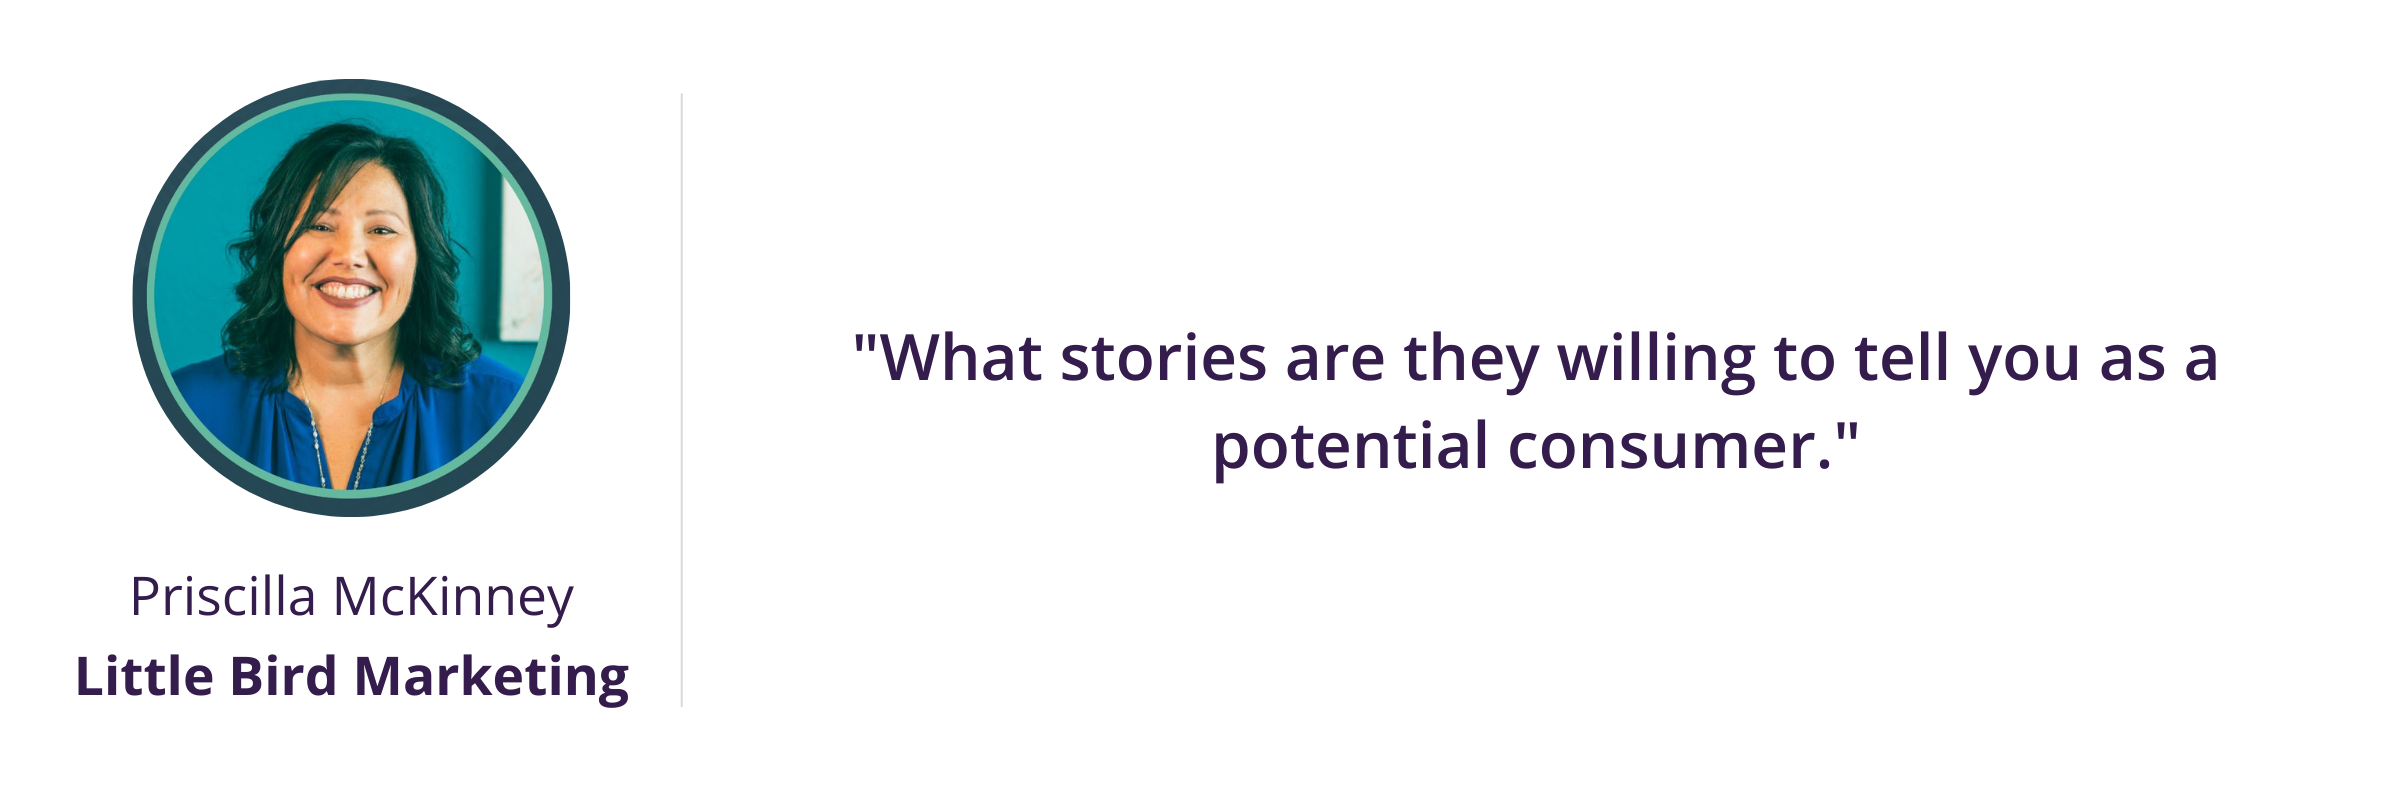 What stories are they willing to tell you as a potential consumer.